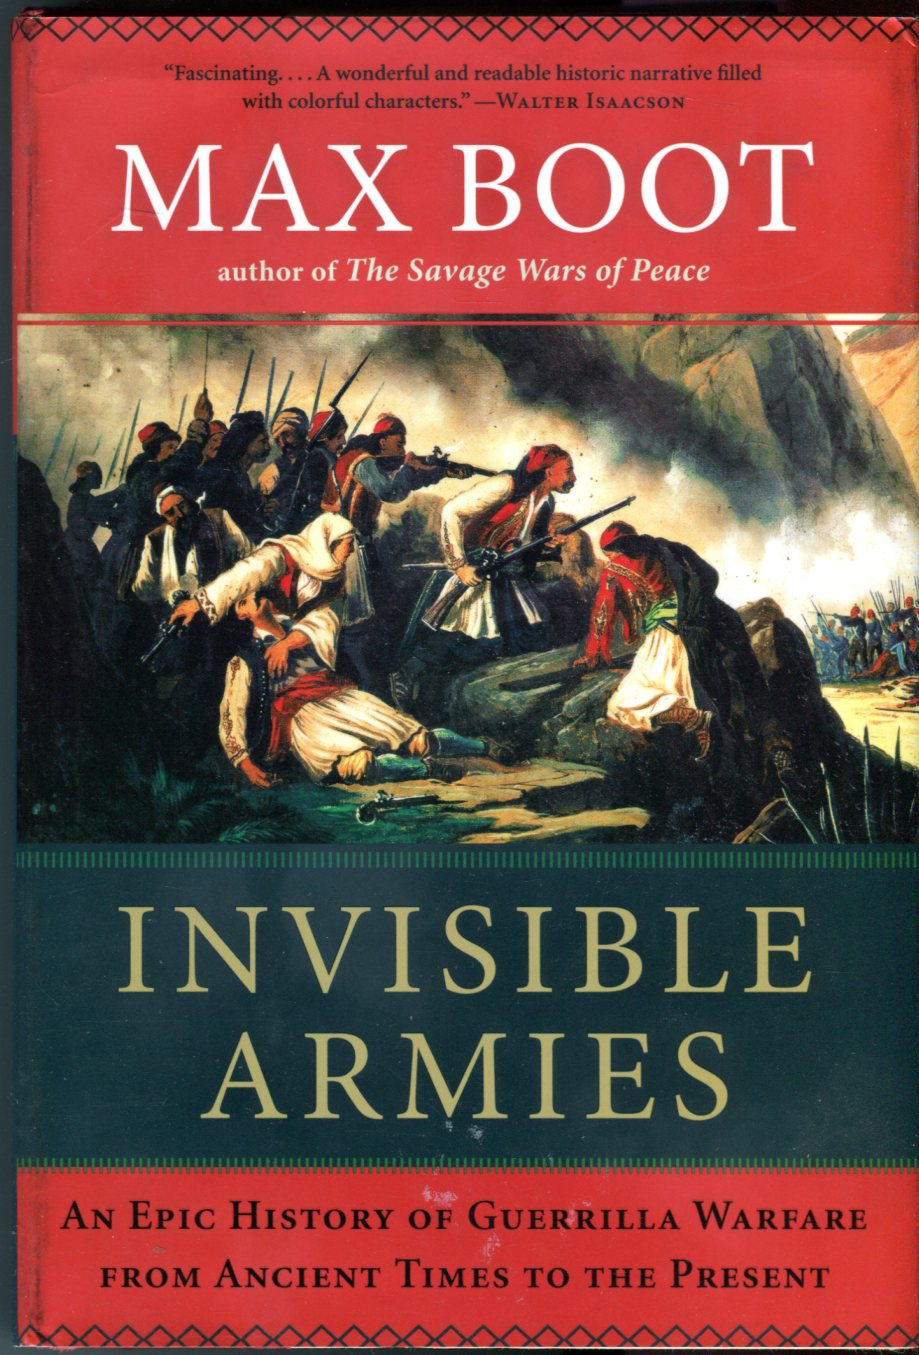 Image for Invisible Armies: An Epic History of Guerrilla Warfare from Ancient Times to the Present